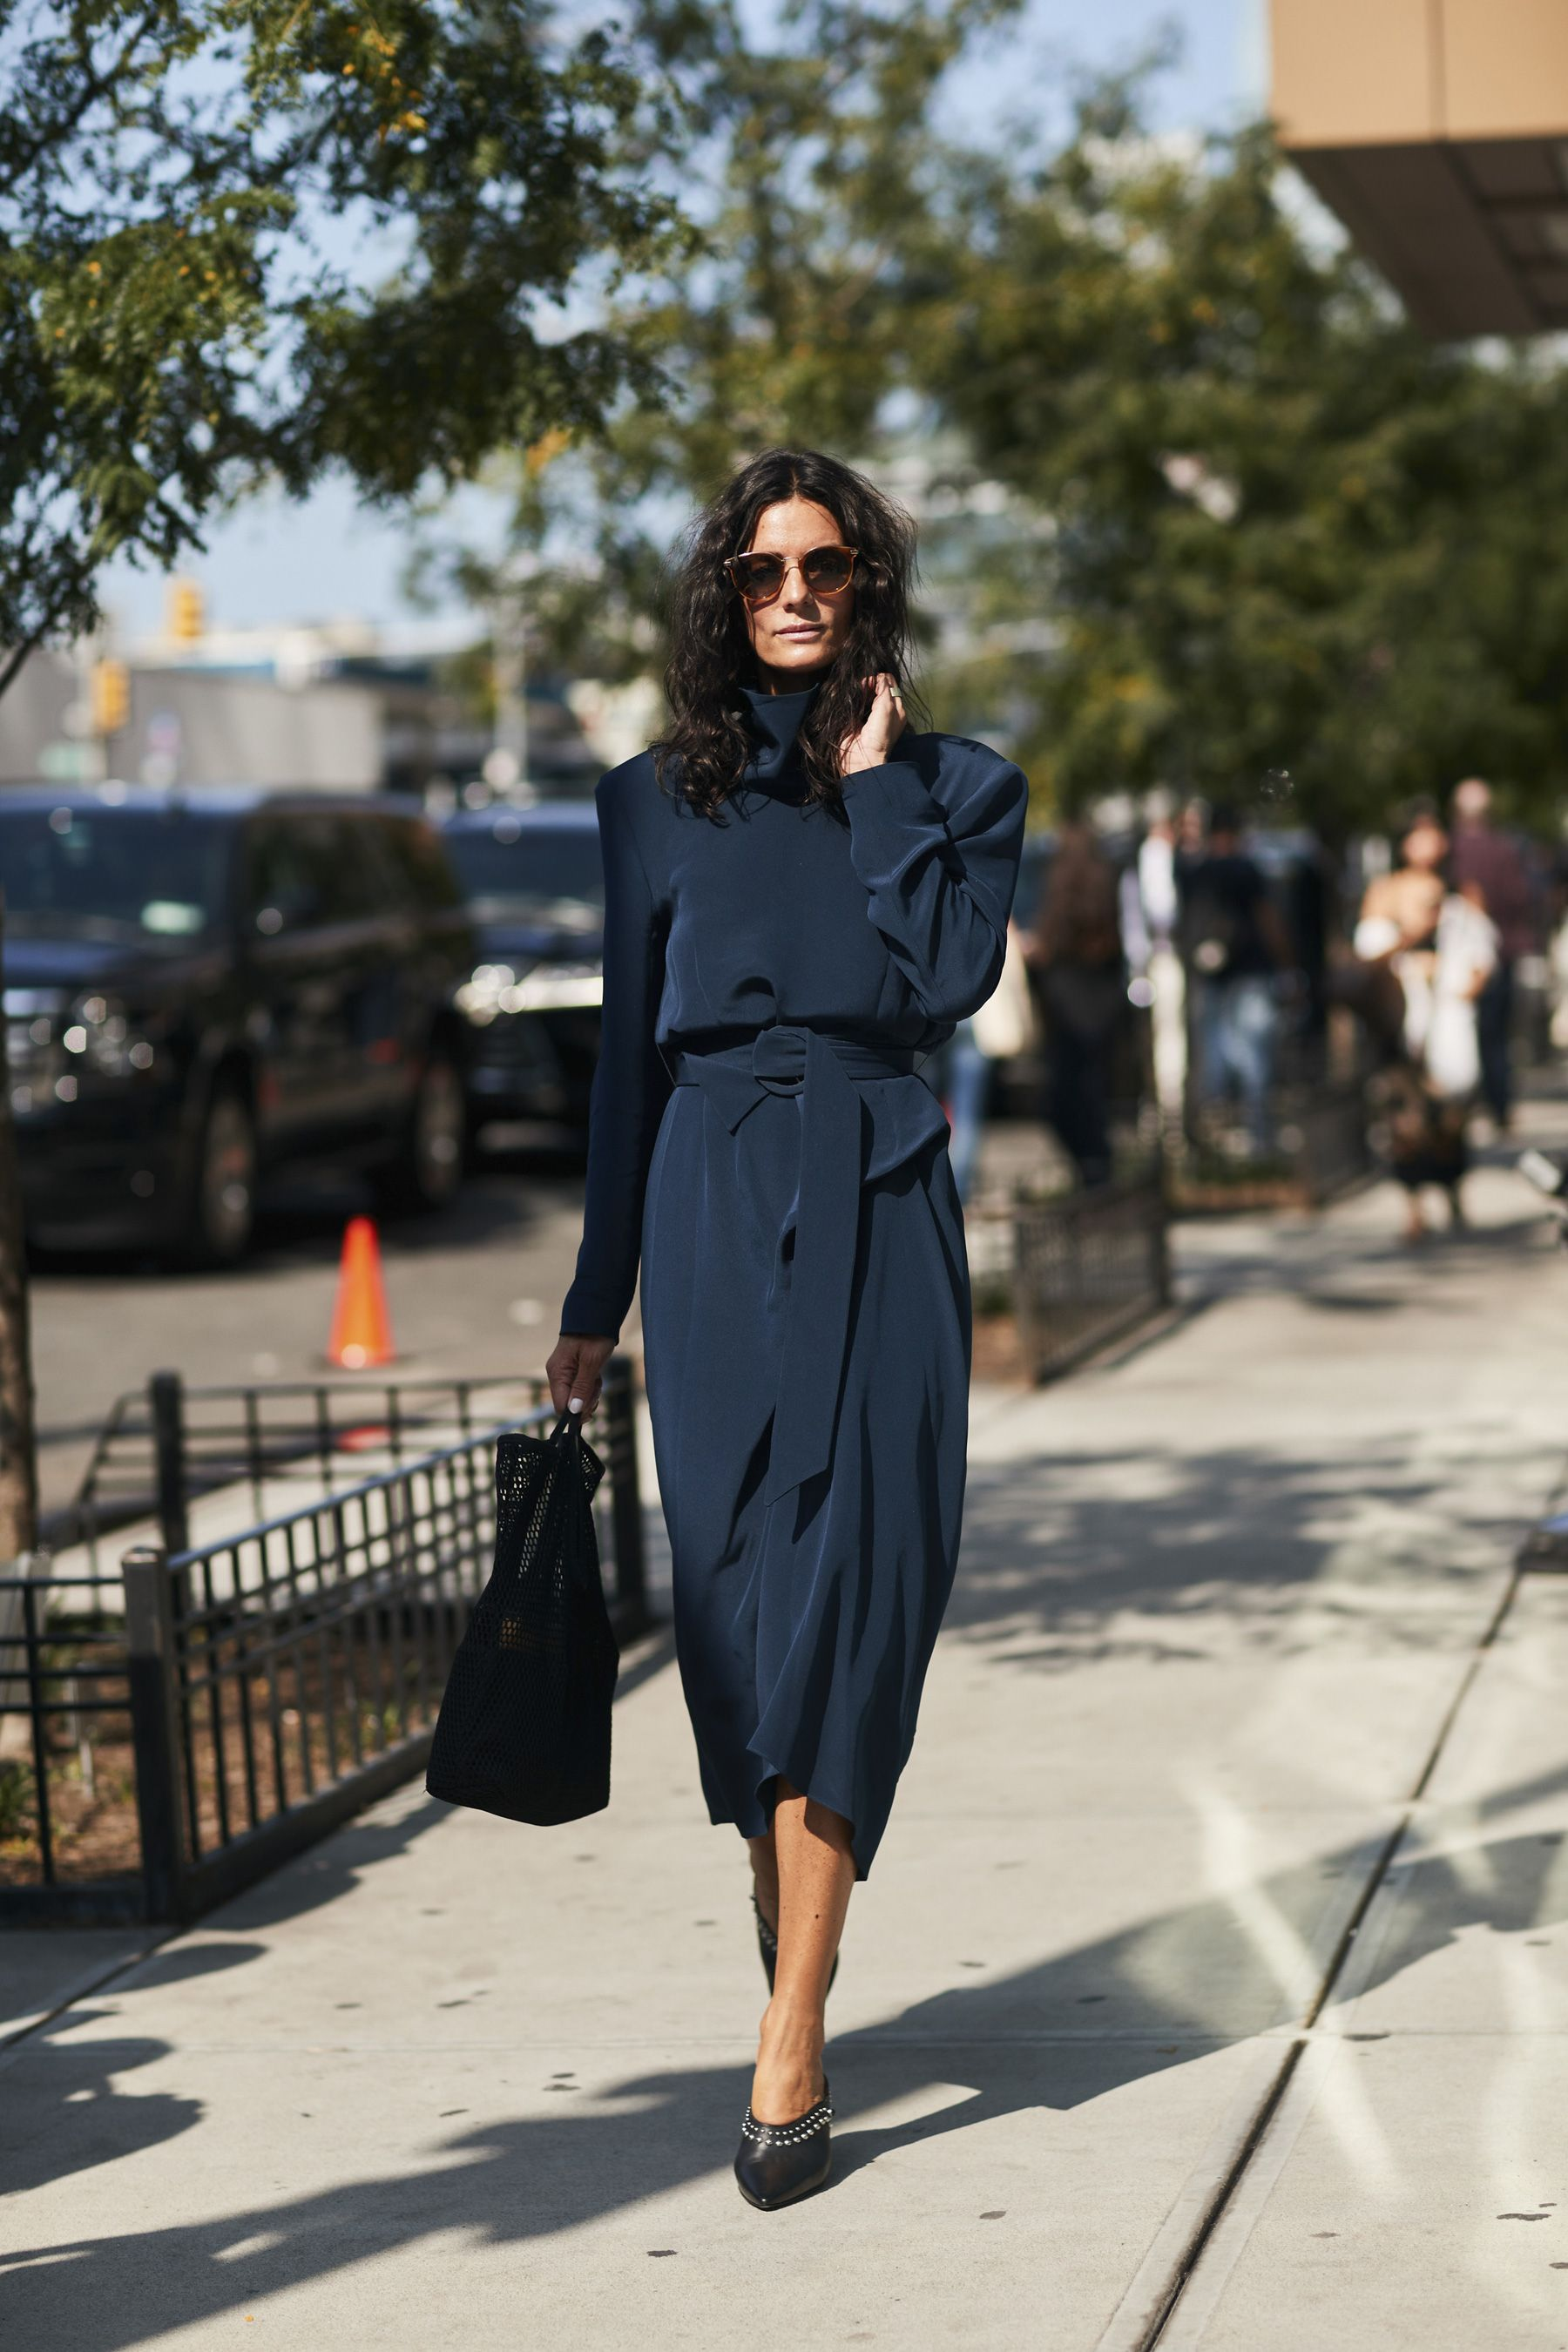 f71ad0934c9 Street Style Nueva York - ELLE.es. Navy midi dress+black pumps+black  handbag+sunglasses. Pre-Fall Dressy Casual Outfit 2017